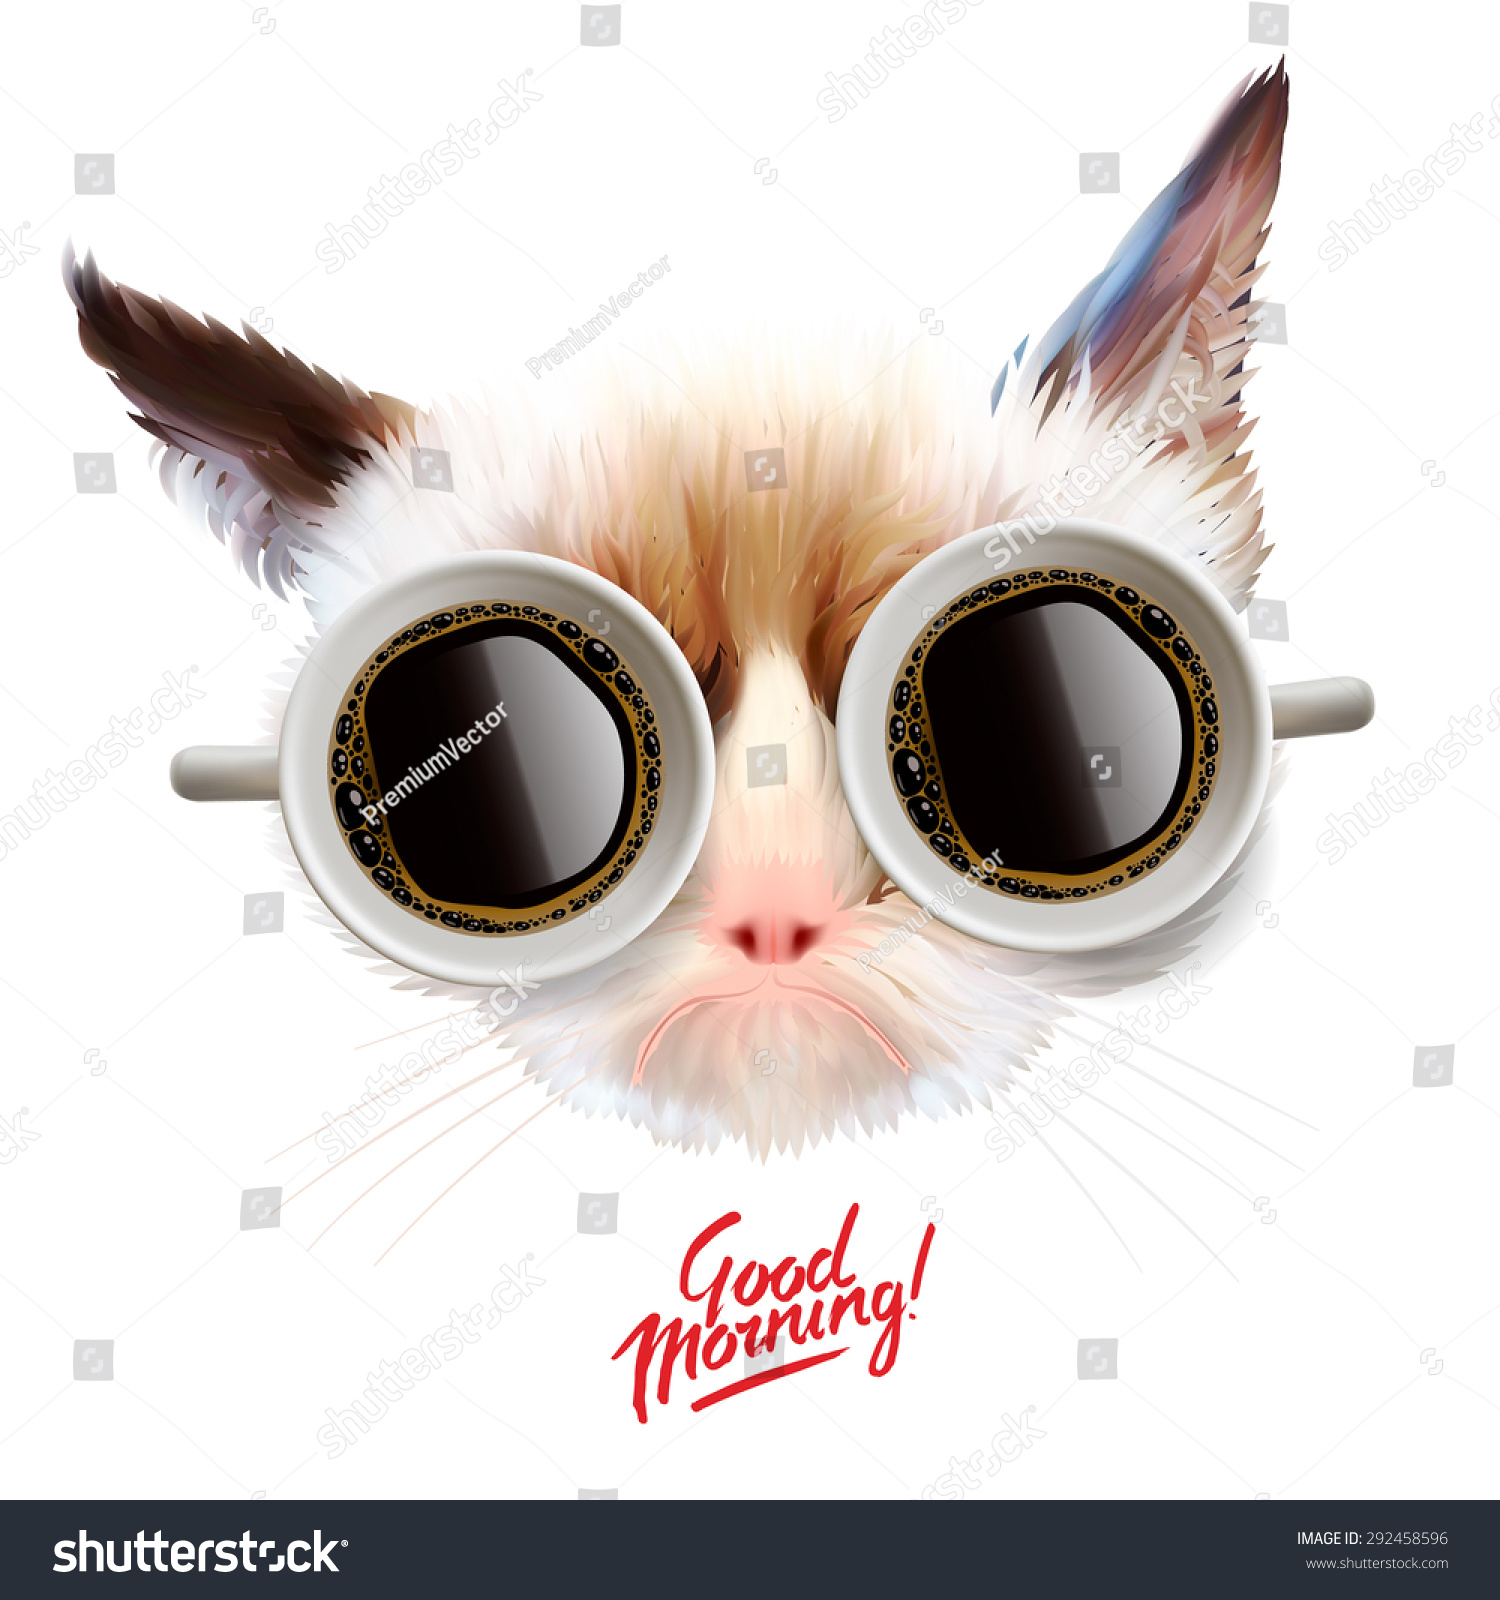 Grumpy Cat With Sunglasses